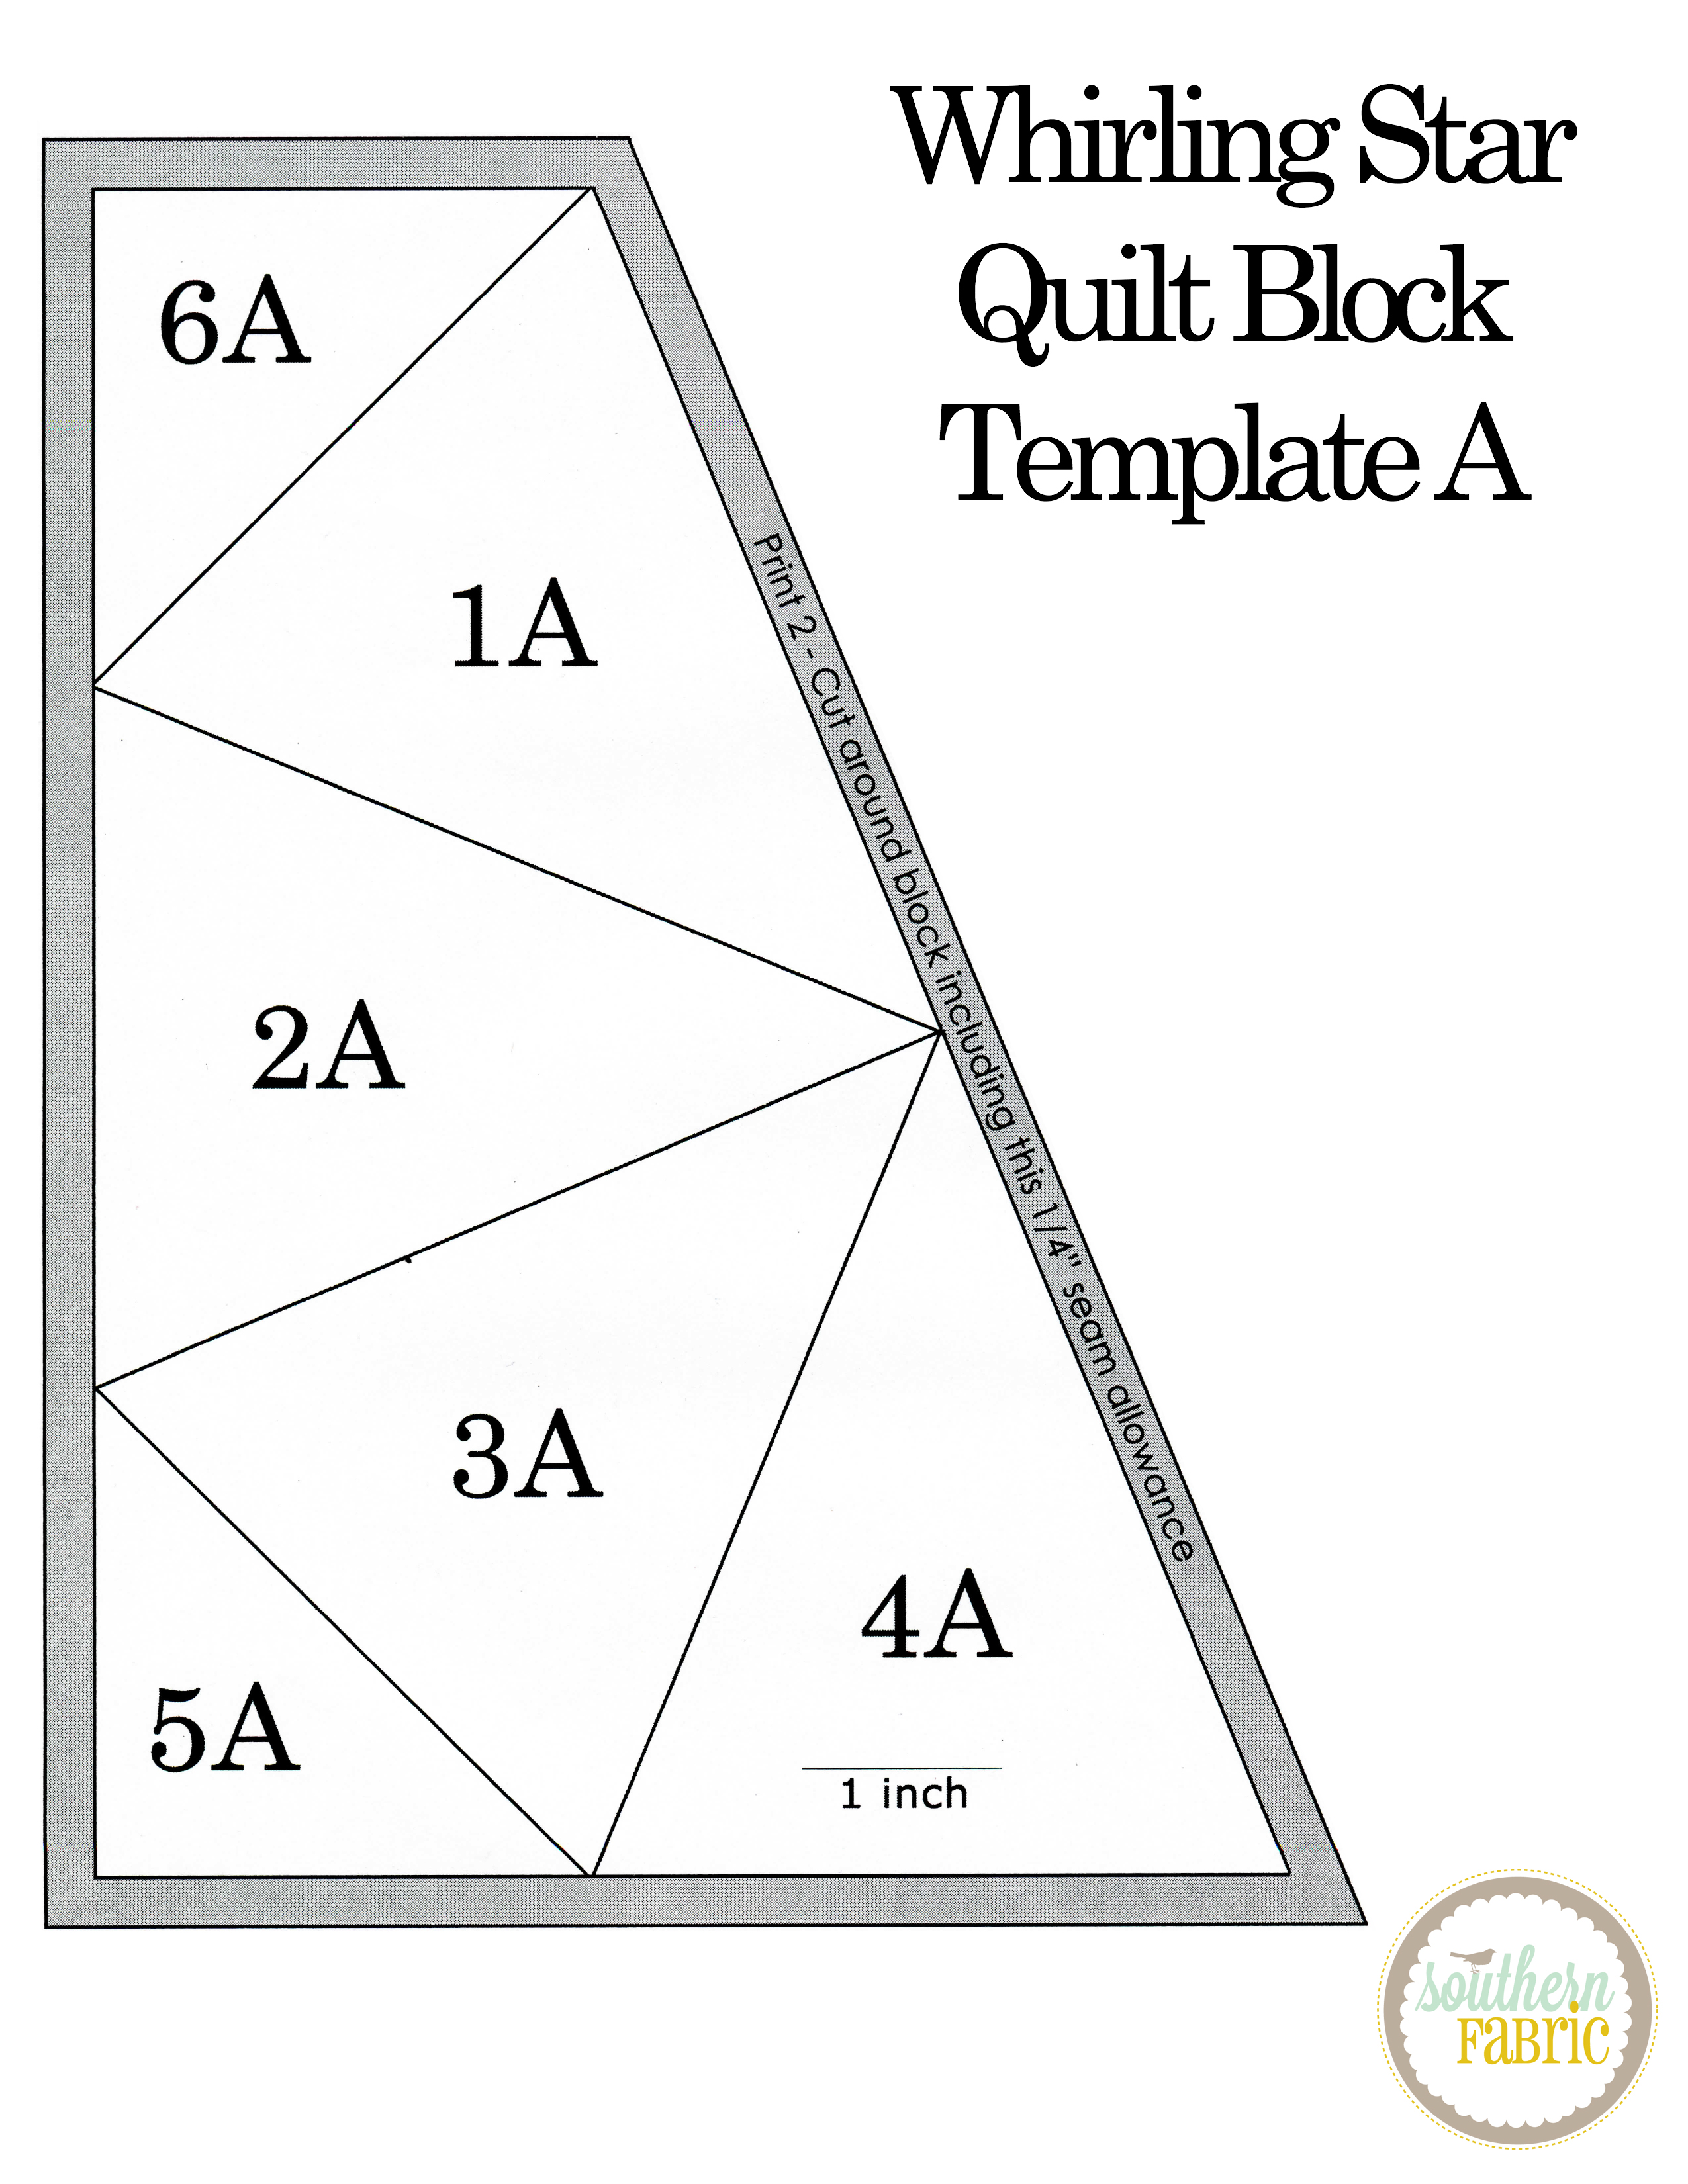 Whirling Star Quilt Block Tutorial Southern Fabricsouthern Fabric